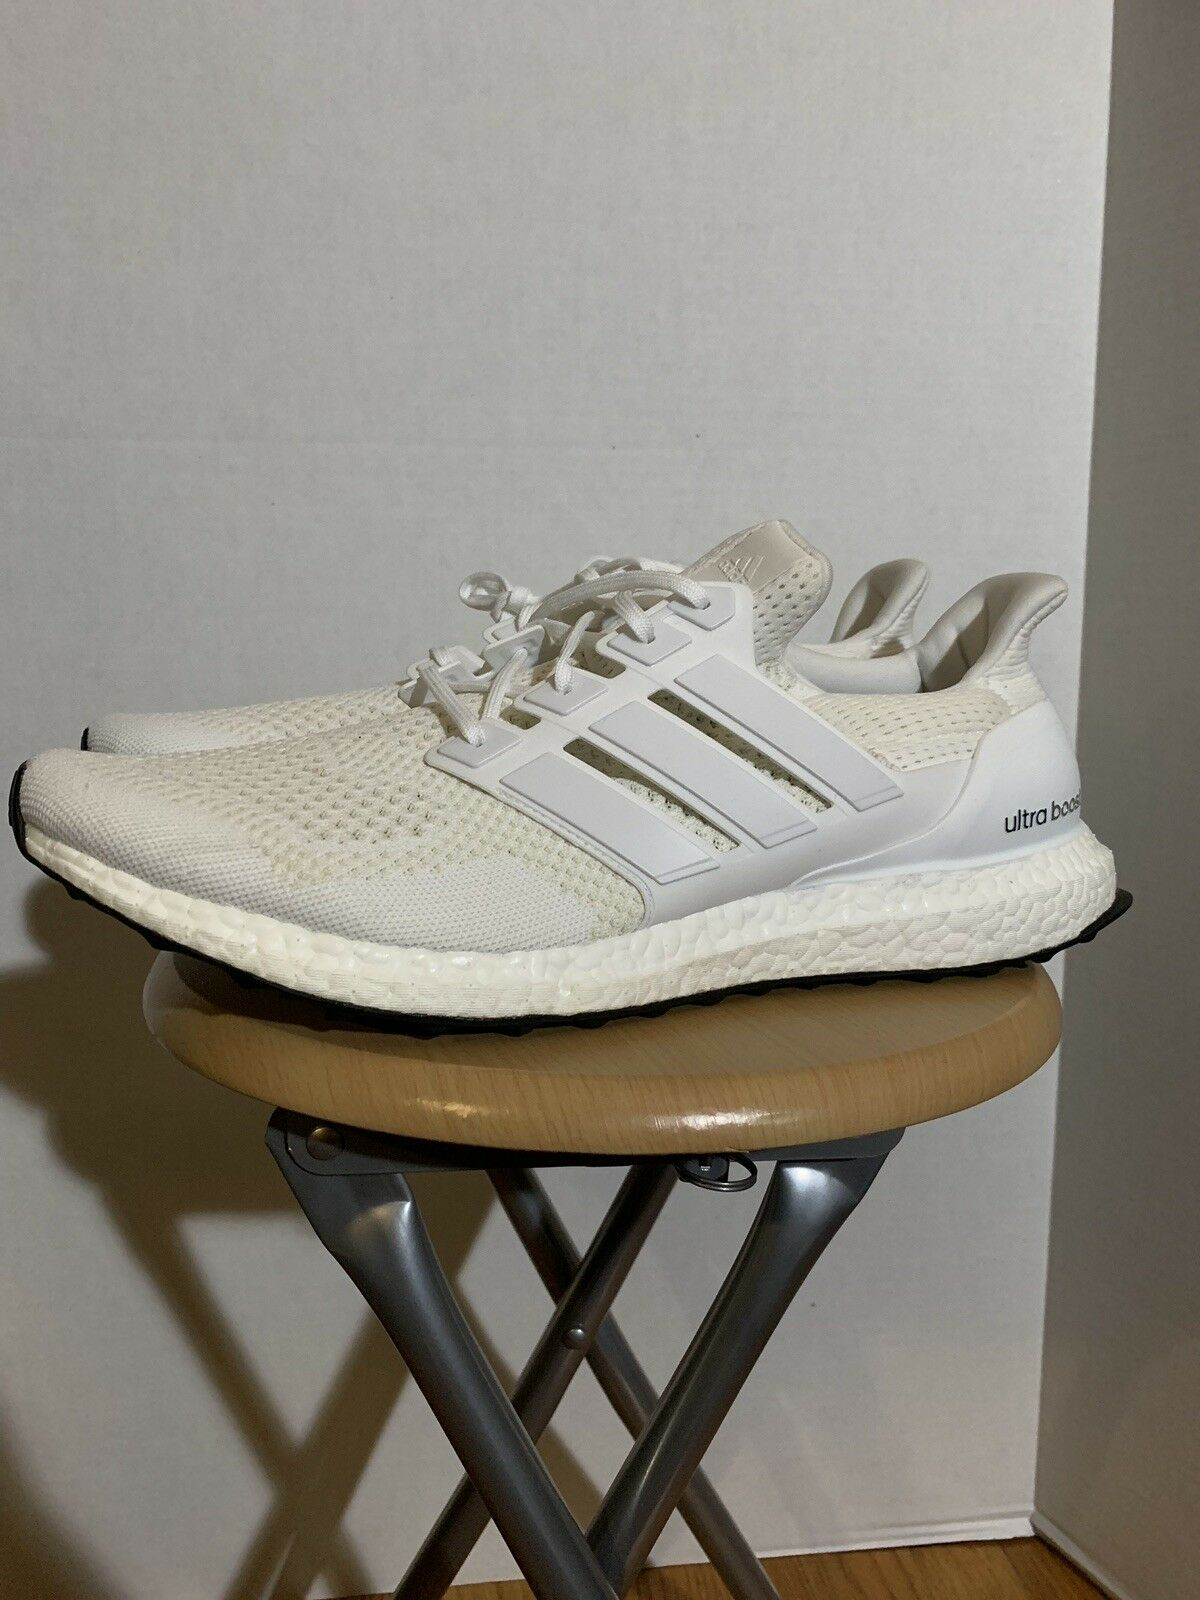 ADIDAS ULTRABOOST 1.0 ALL WHITE